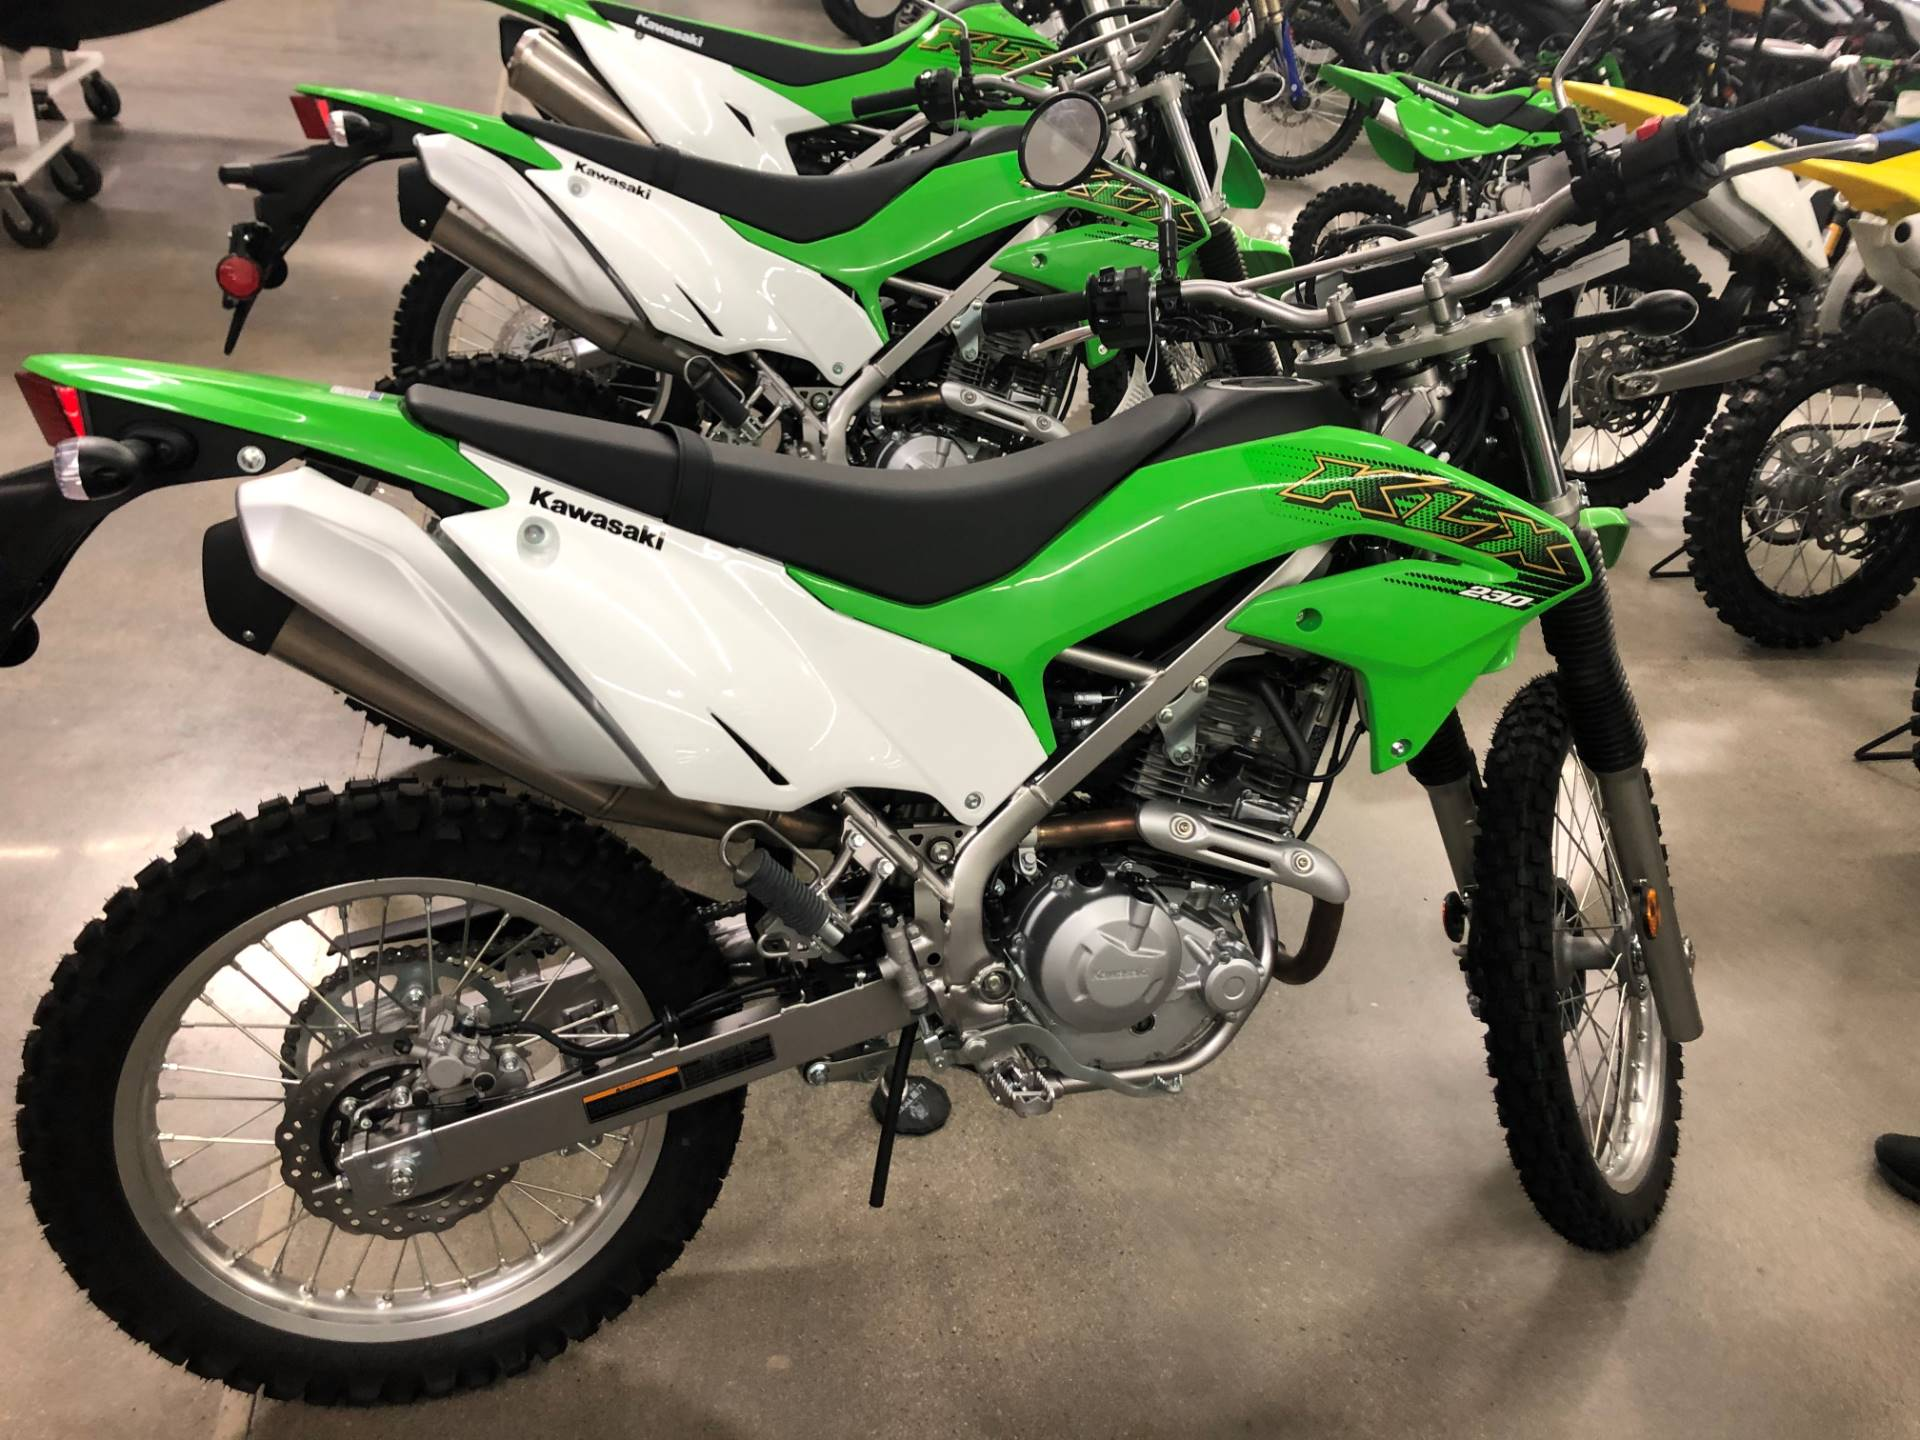 2020 Kawasaki KLX 230 ABS in Corona, California - Photo 1